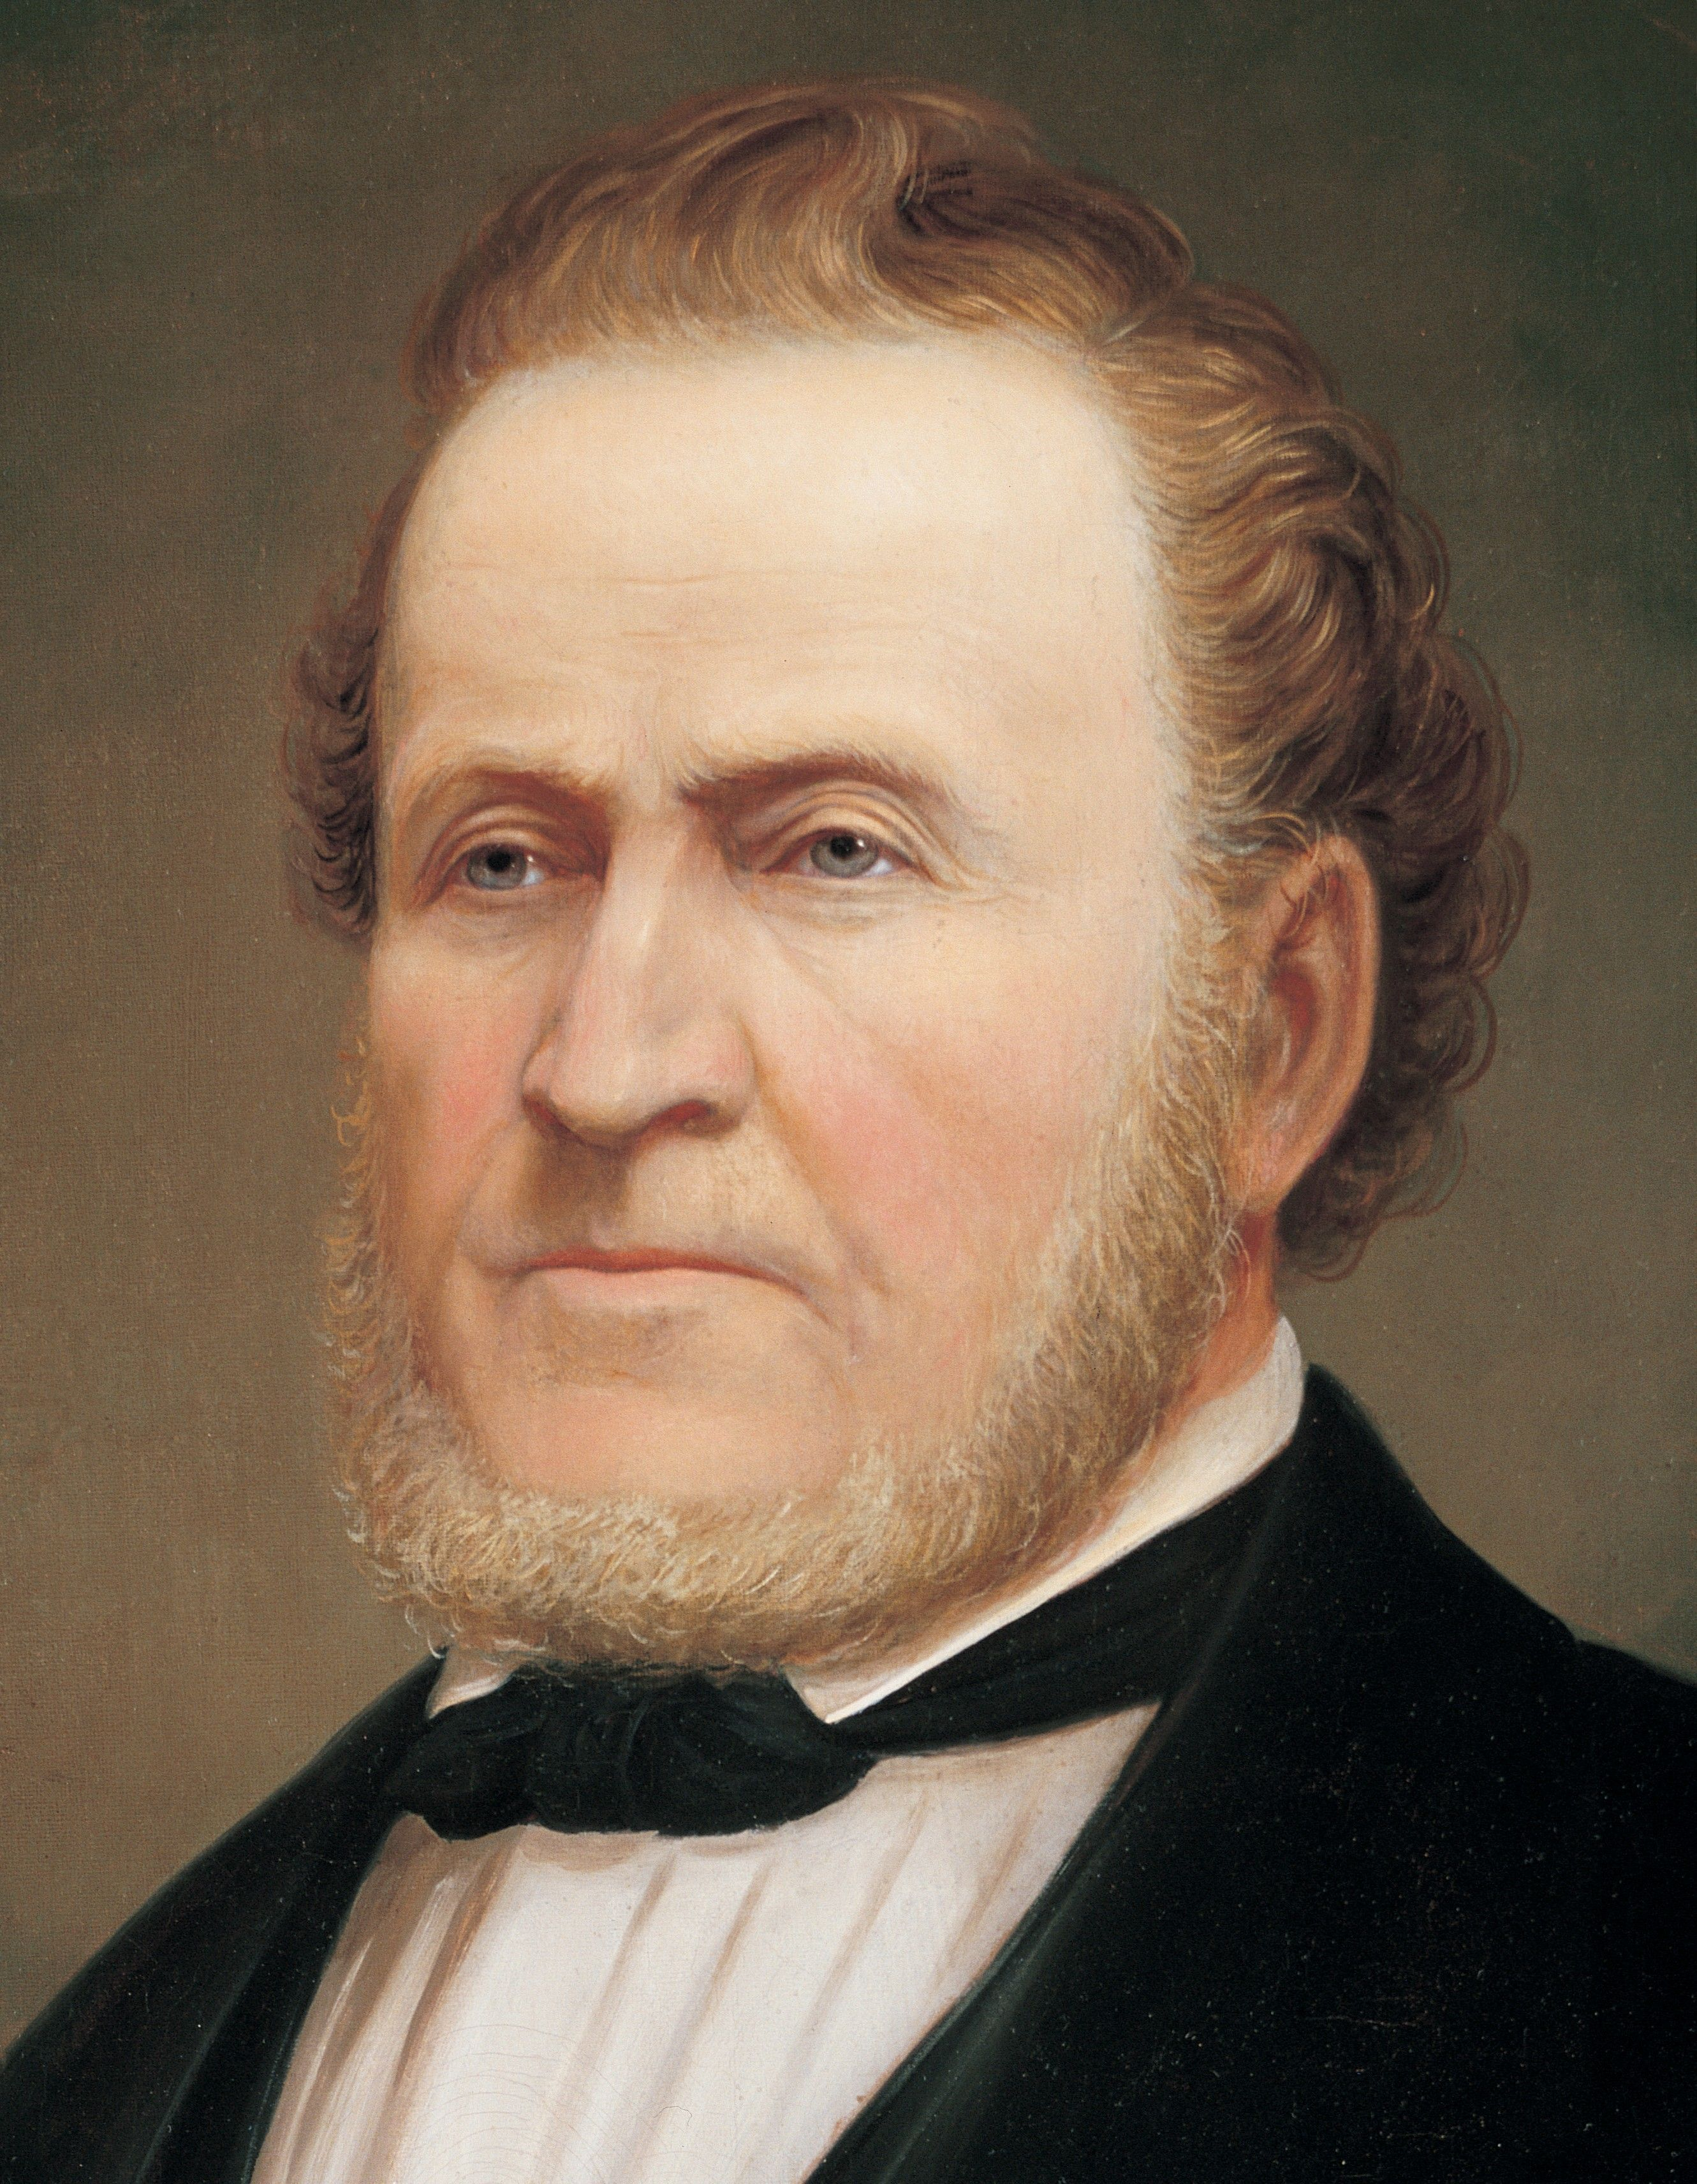 A portrait of Brigham Young, who served as the second President of the Church from 1847 to 1877; painted by George Martin Ottinger.